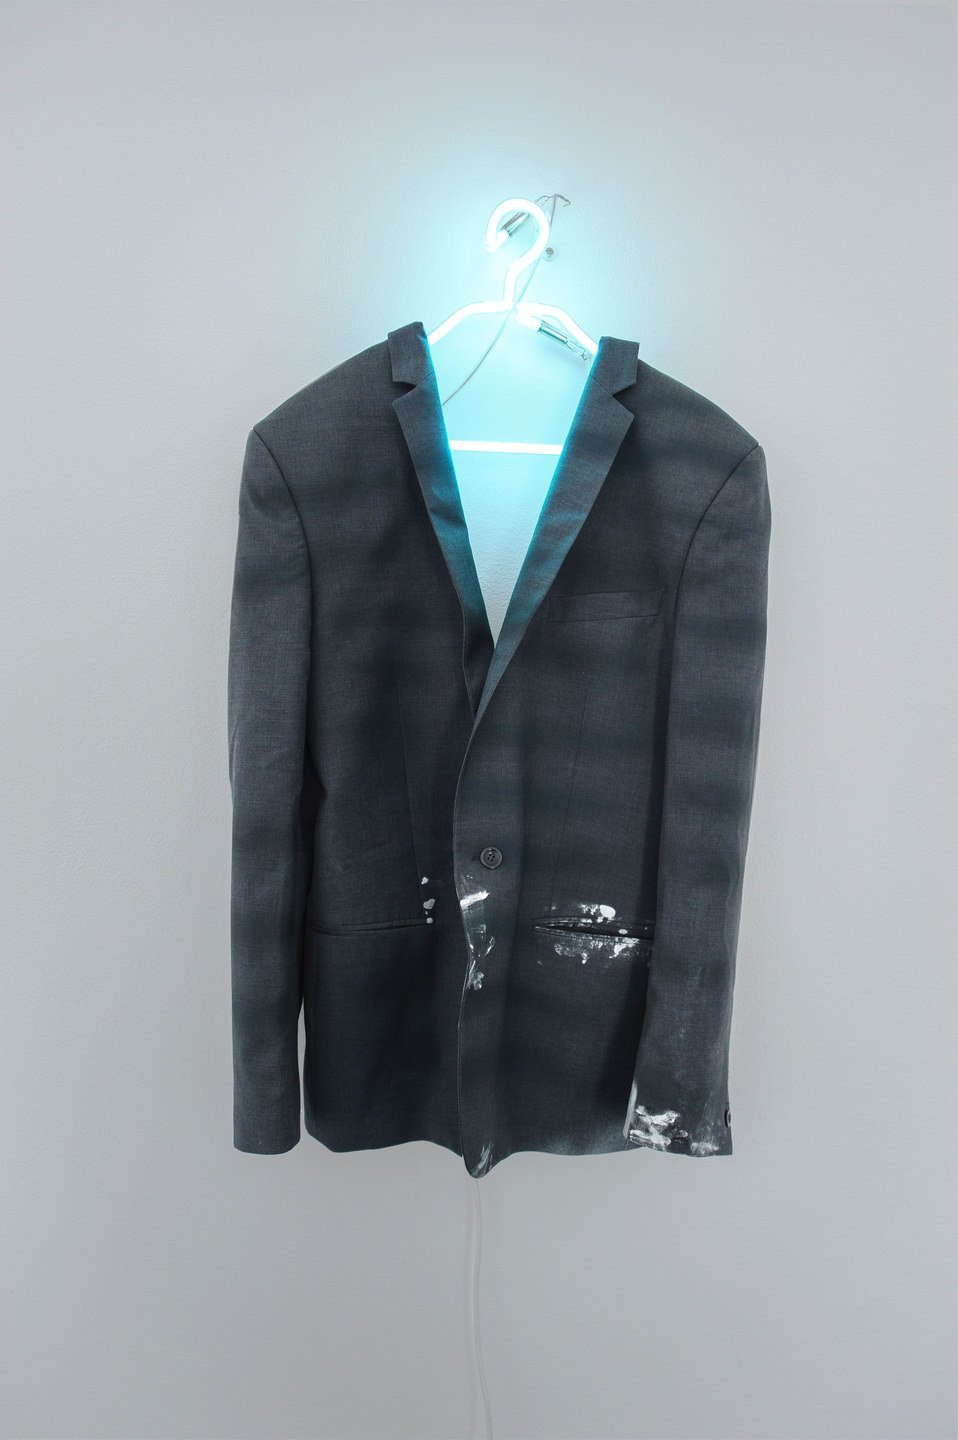 Florian Auer, From Nine to Five, 2013, neon, jacket, airbrushed paint, (75 x 135 x 75 cm)